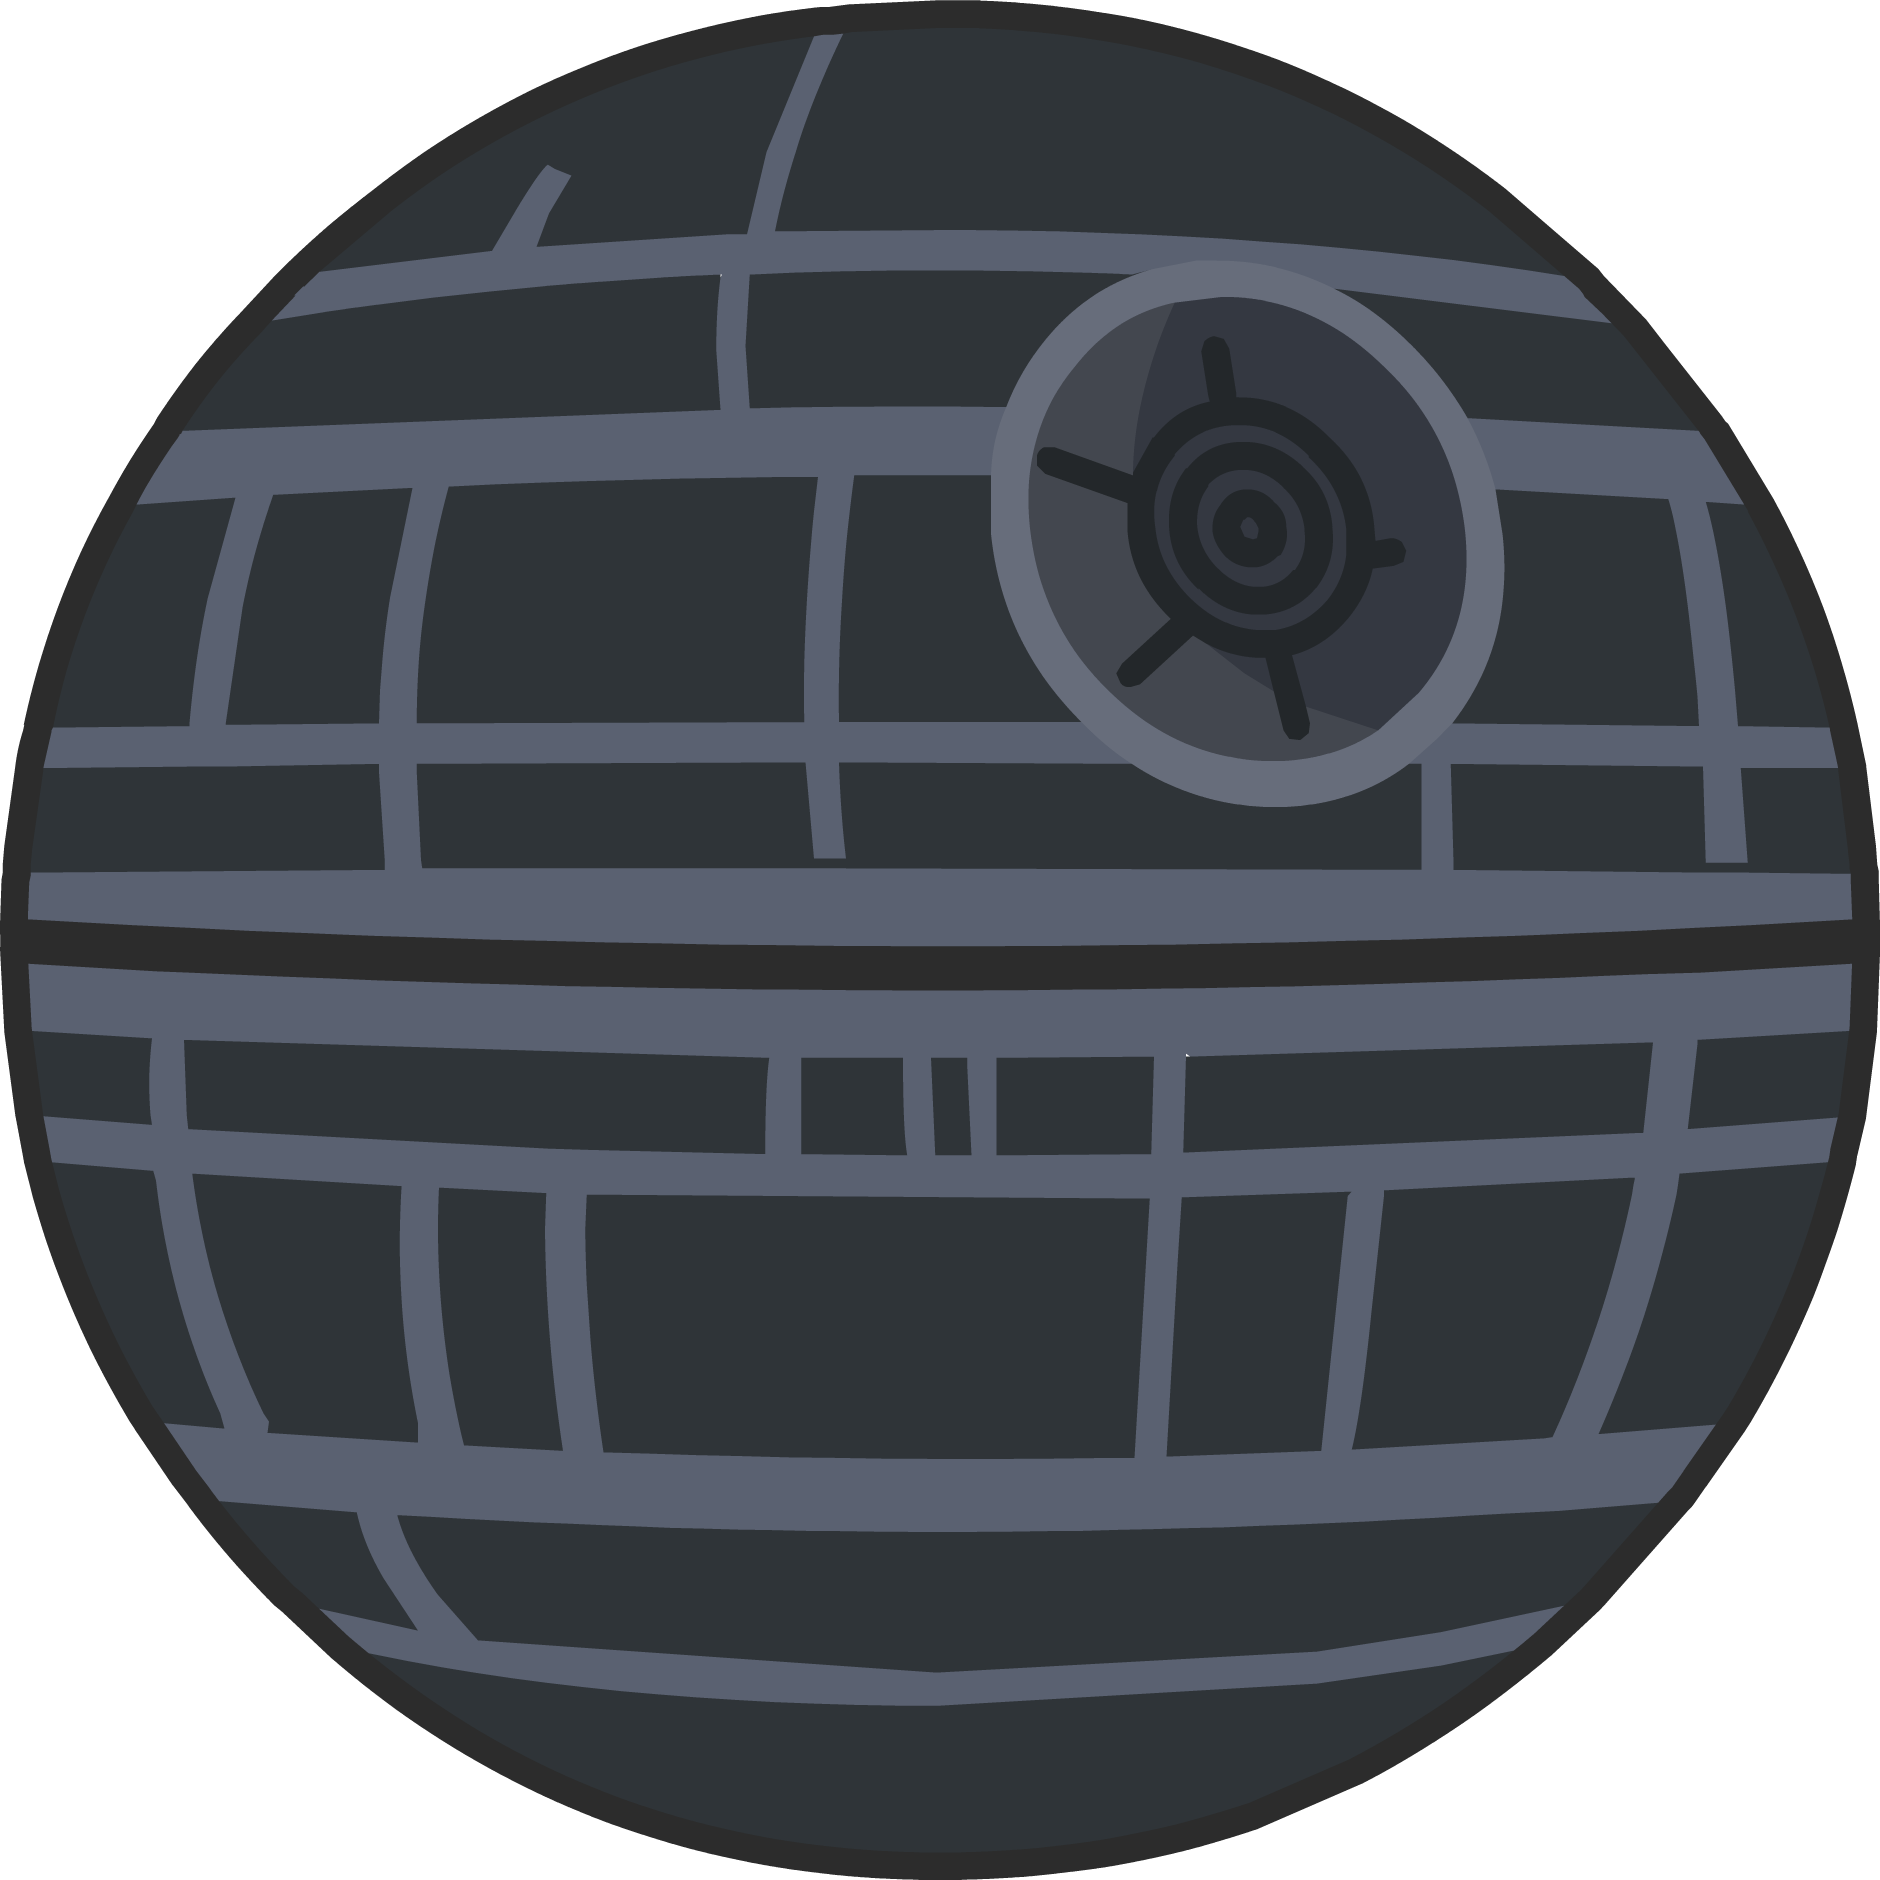 Club penguin wiki fandom. Death star clipart